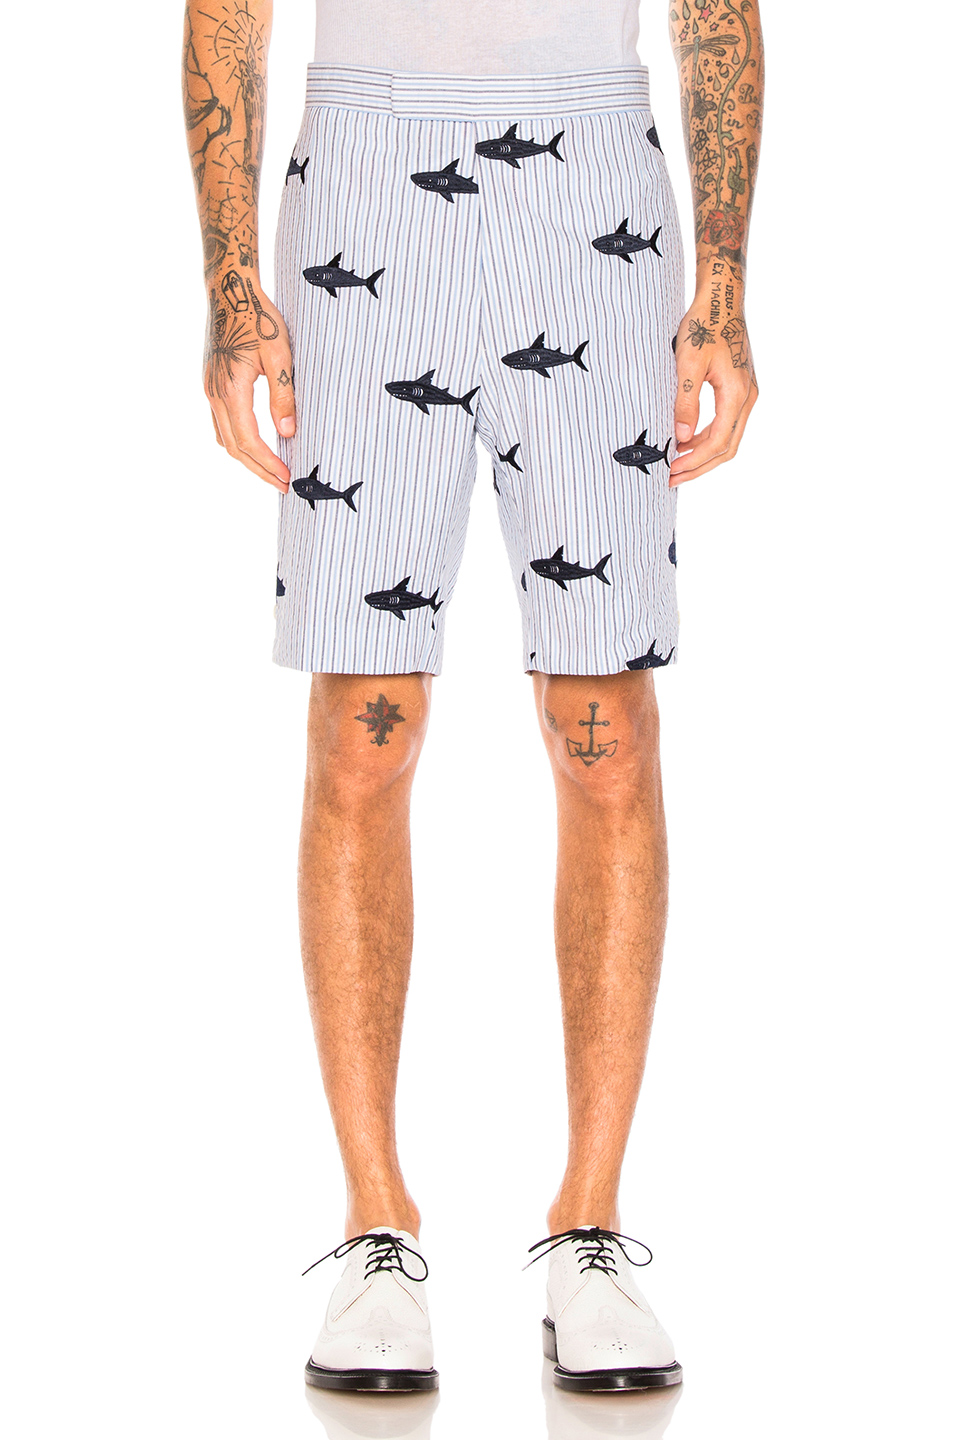 Thom Browne Shark Embroidery Shorts in Blue,Sripes,Animal Print